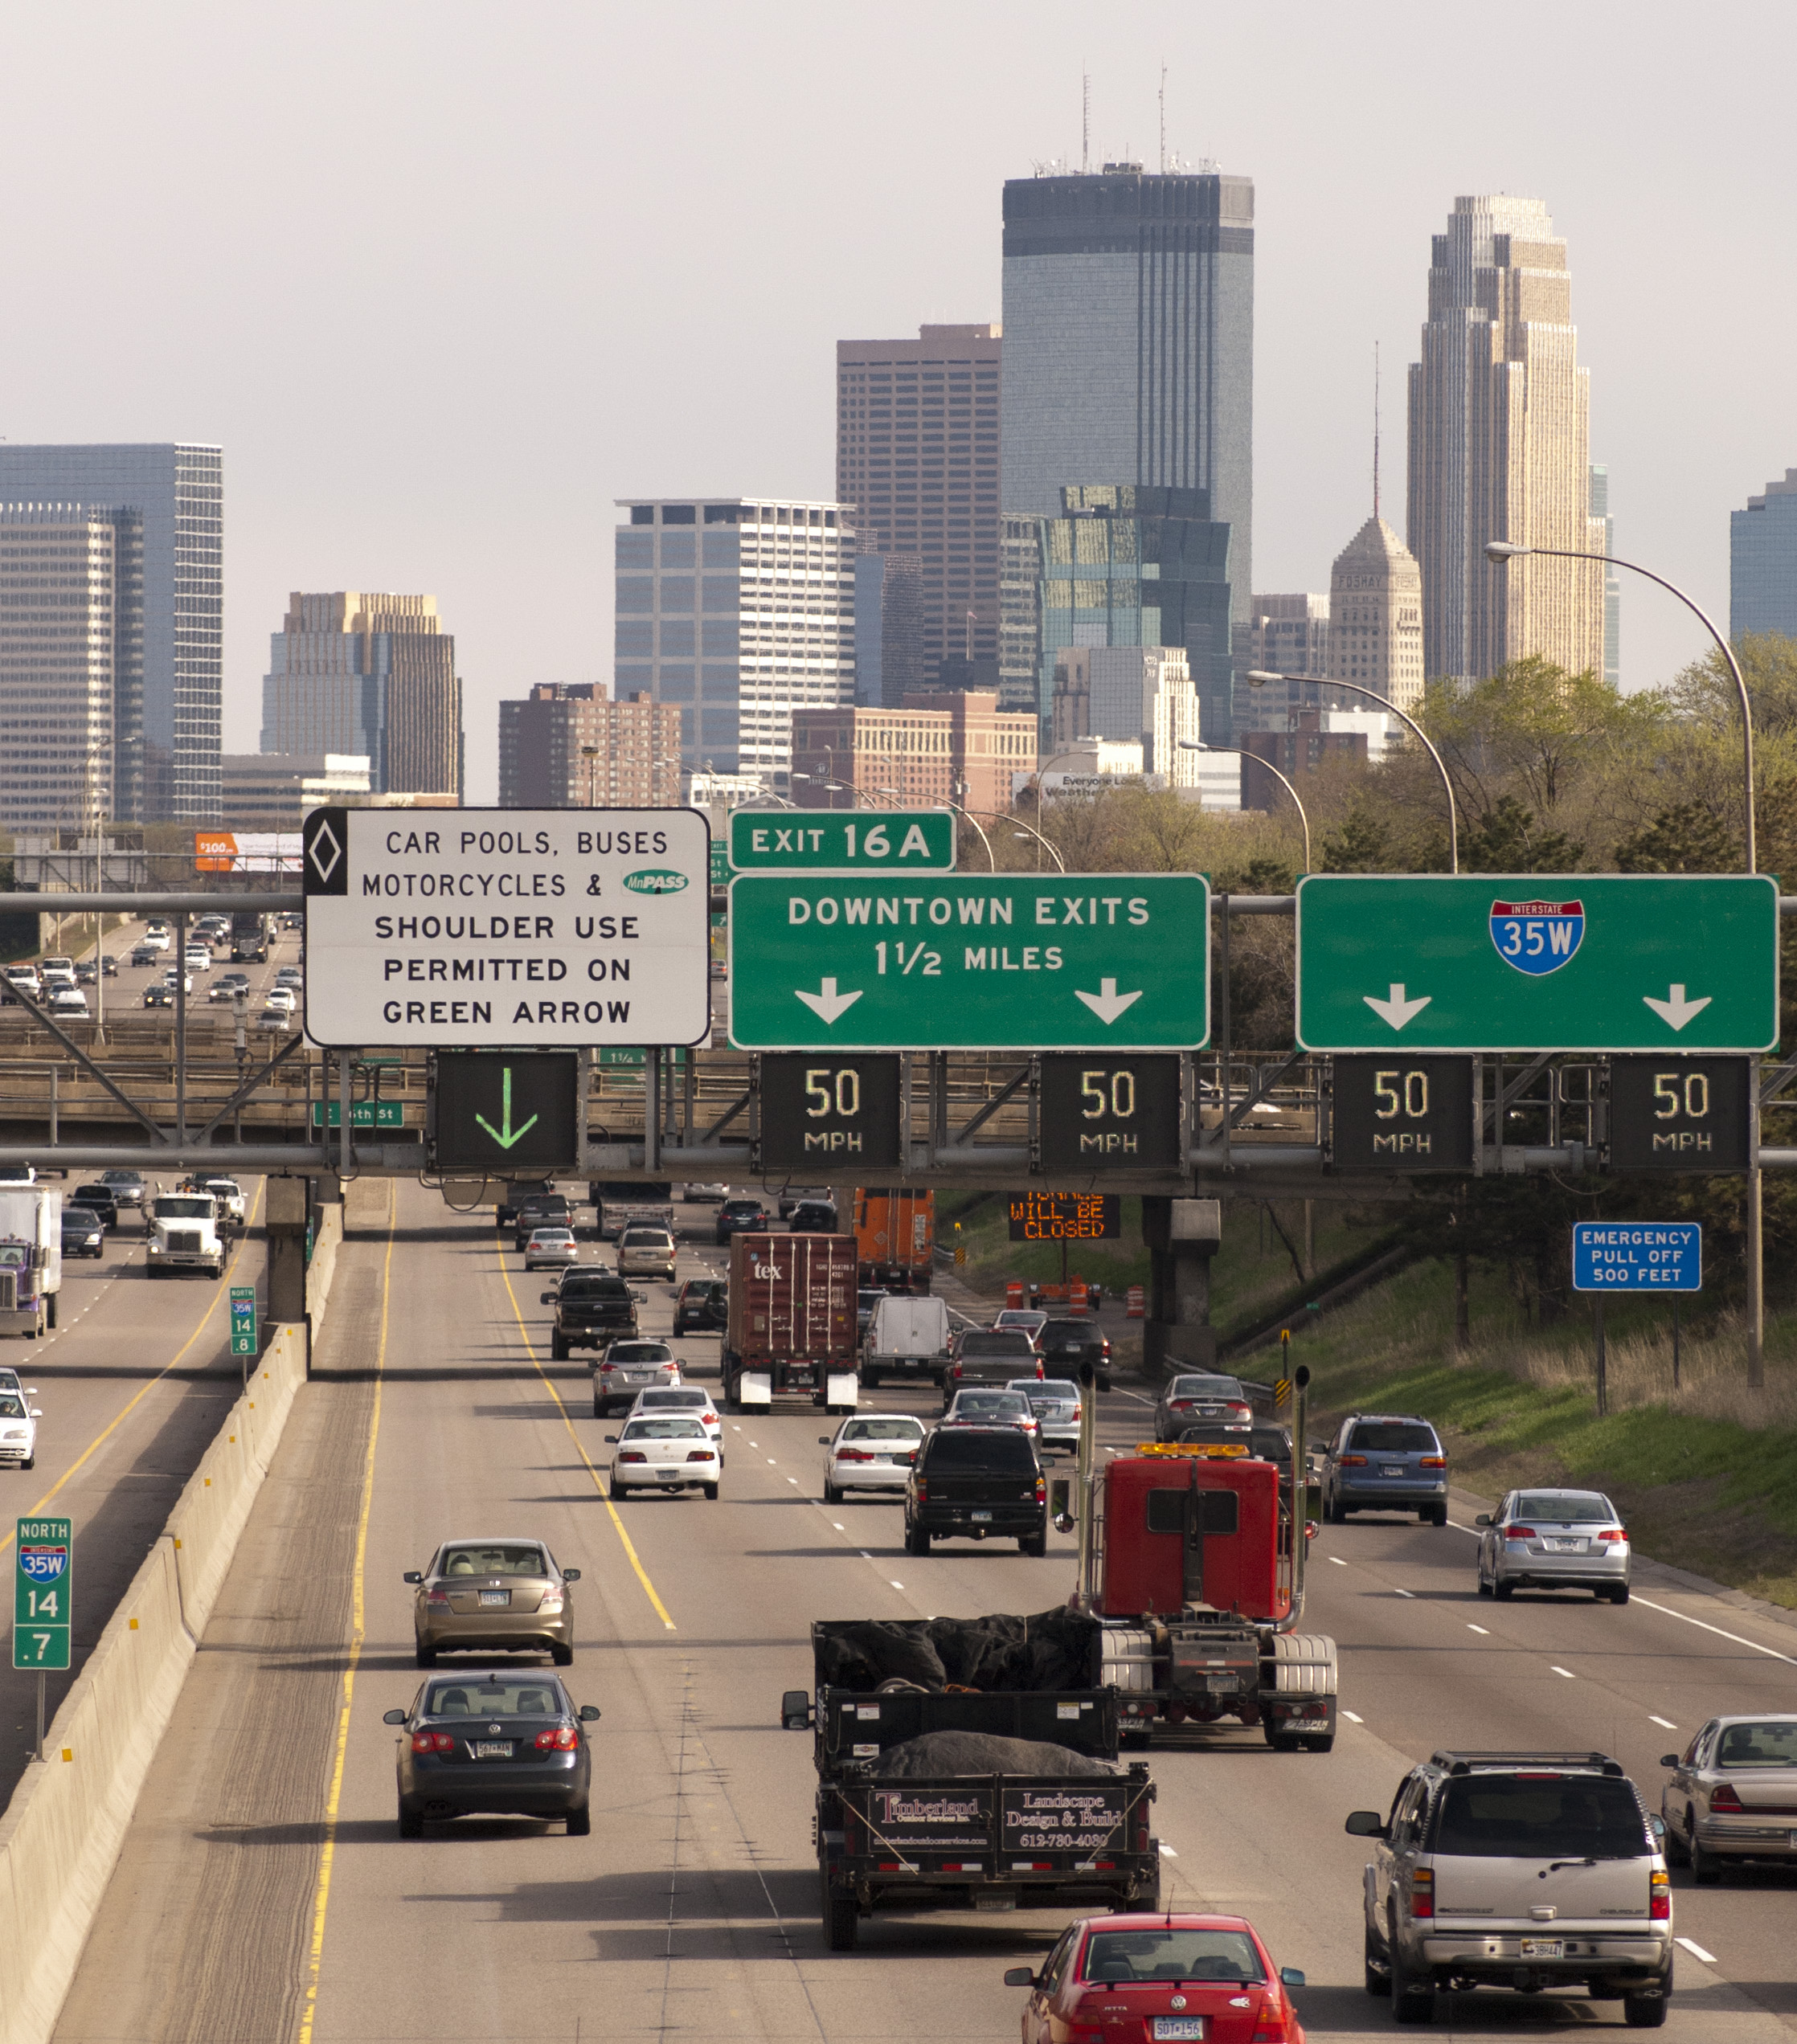 Investigation of the Impact of the I-94 ATM System on the Safety of the I-94 Commons High Crash Area